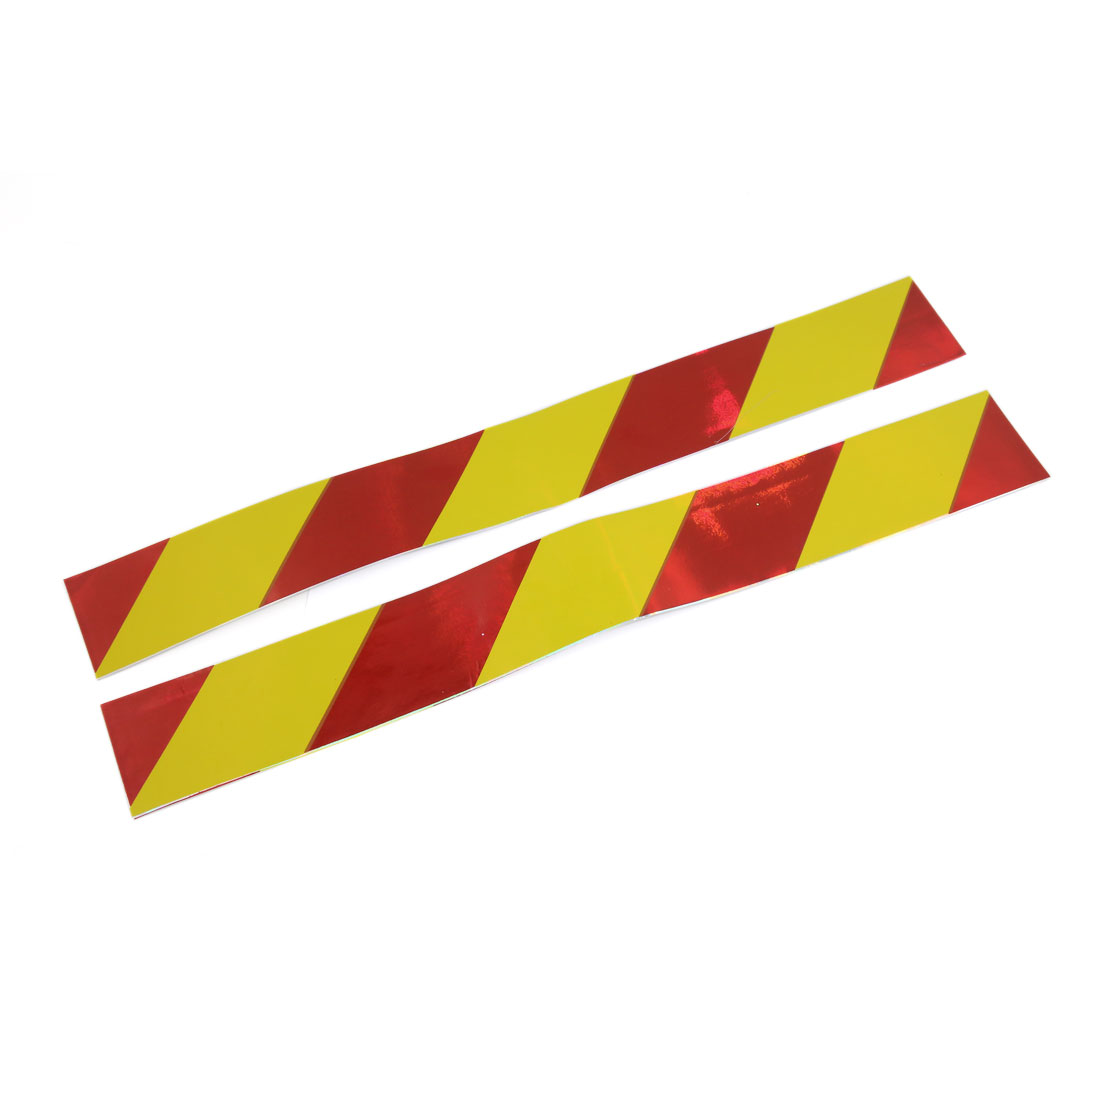 30pcs Yellow Red Reflective Safety Warning Conspicuity Tape Sticker 390mm x 50mm